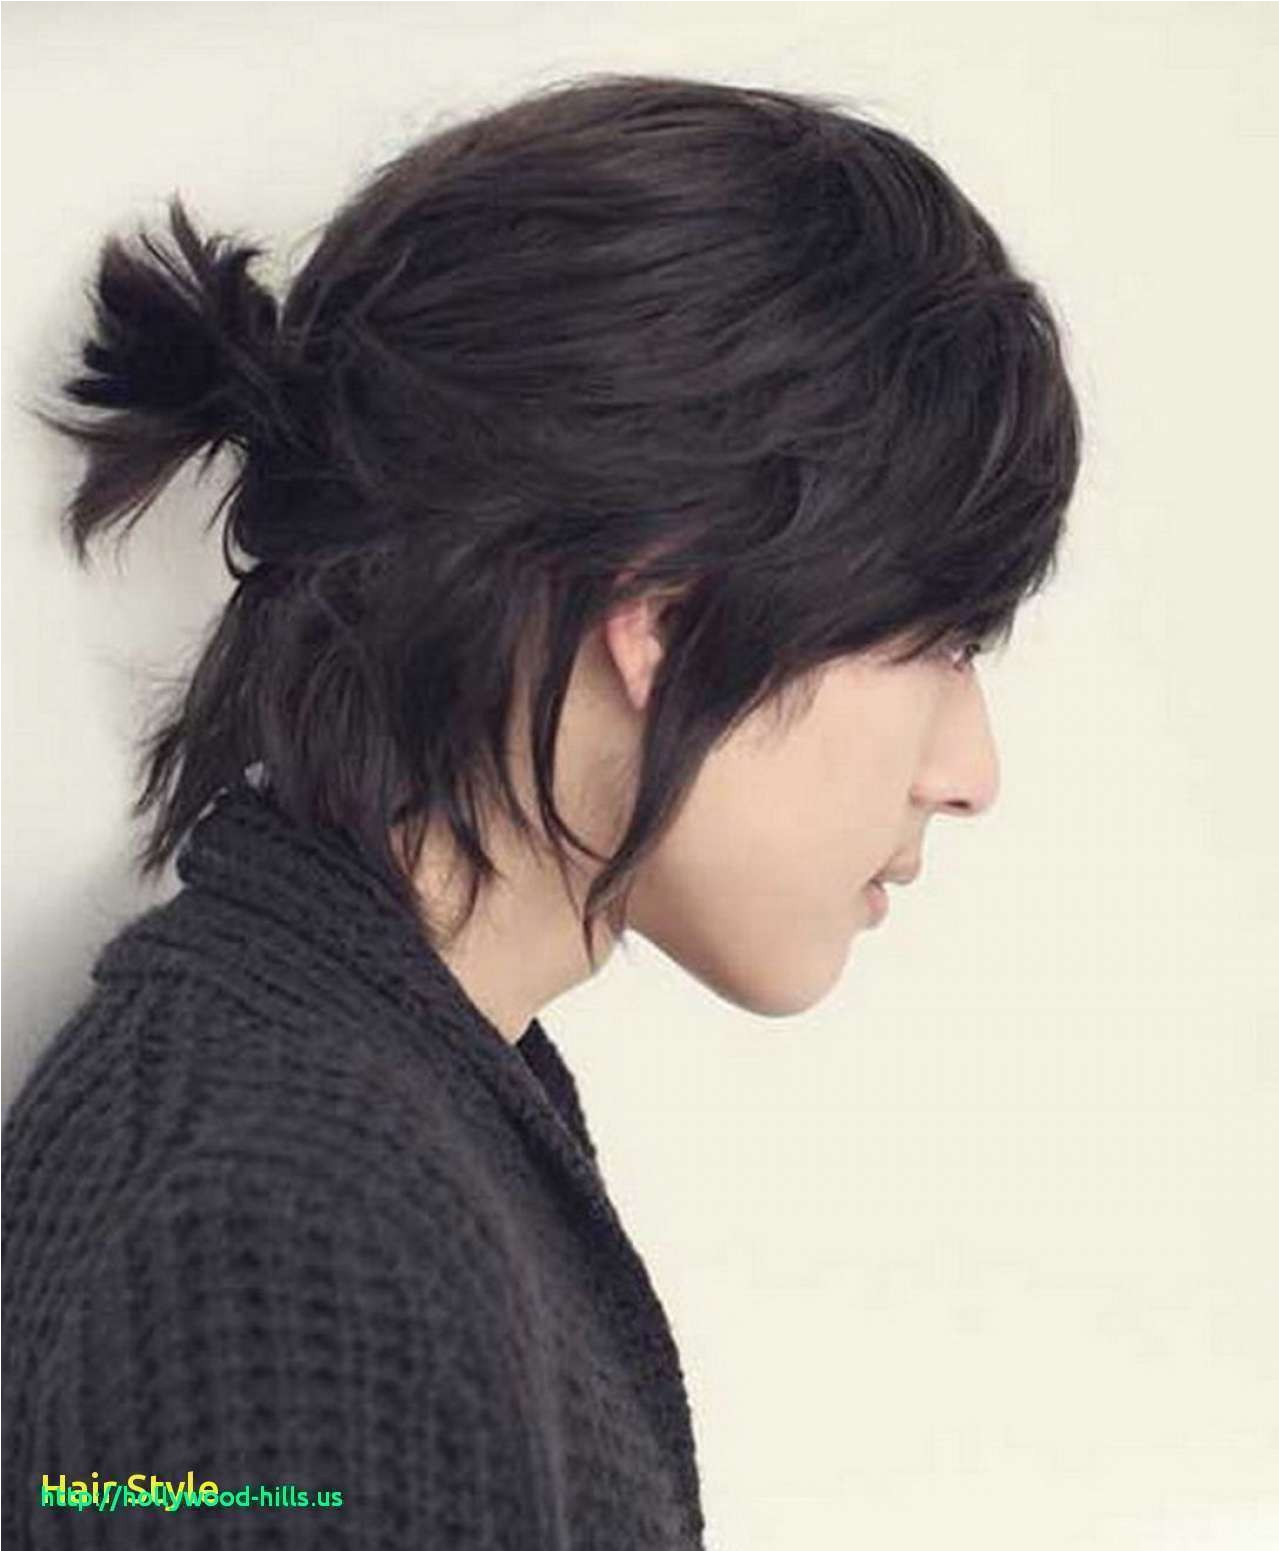 Hairstyles For Thick Asian Hair Beautiful Short Thick Hairstyles S Short Haircut For Thick Hair 0d